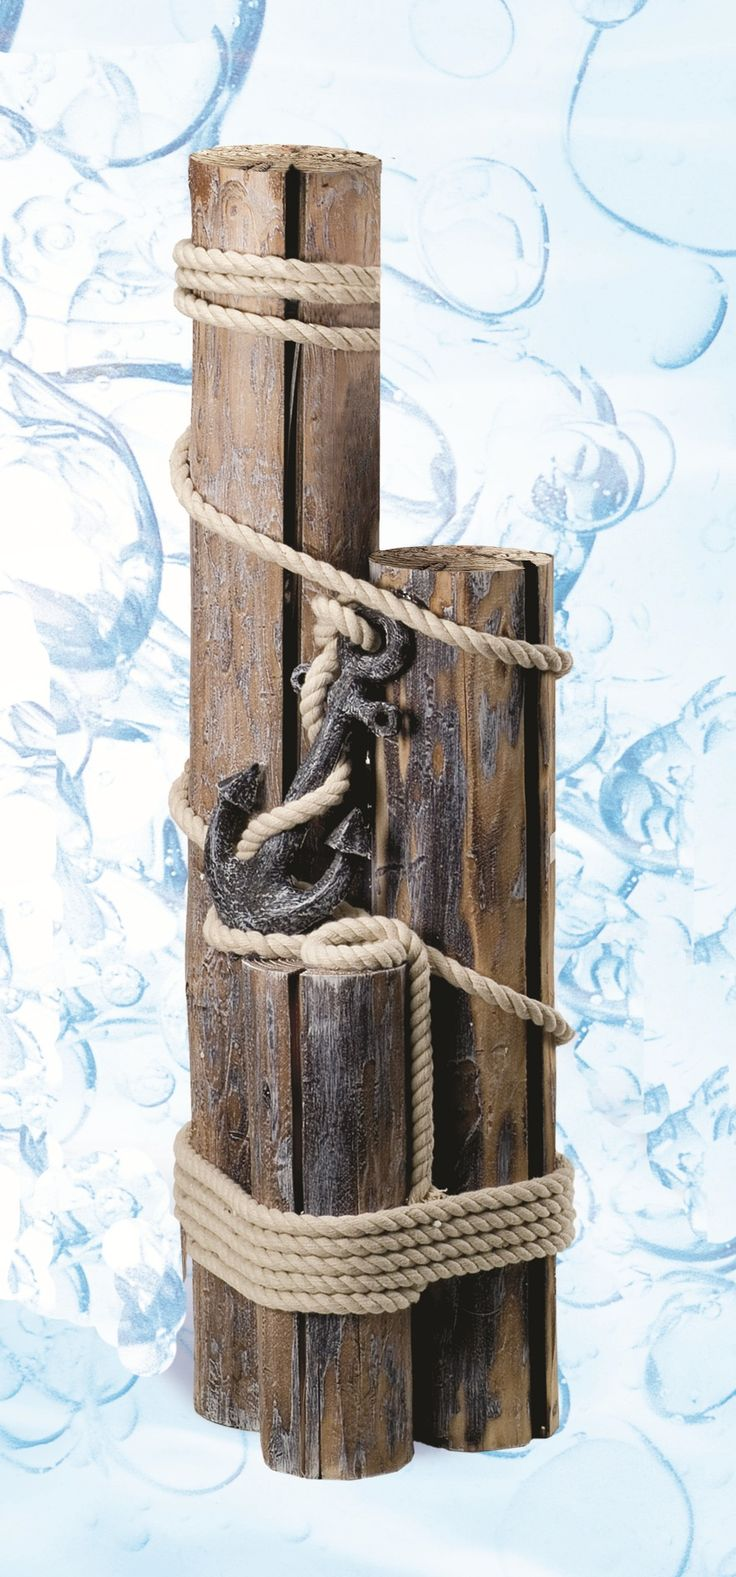 Halloween outdoor decorations pinterest - Decorative Nautical Piling With Rope And Anchor 30 Inch Wooden Pilings Outdoor Nautical D Cor